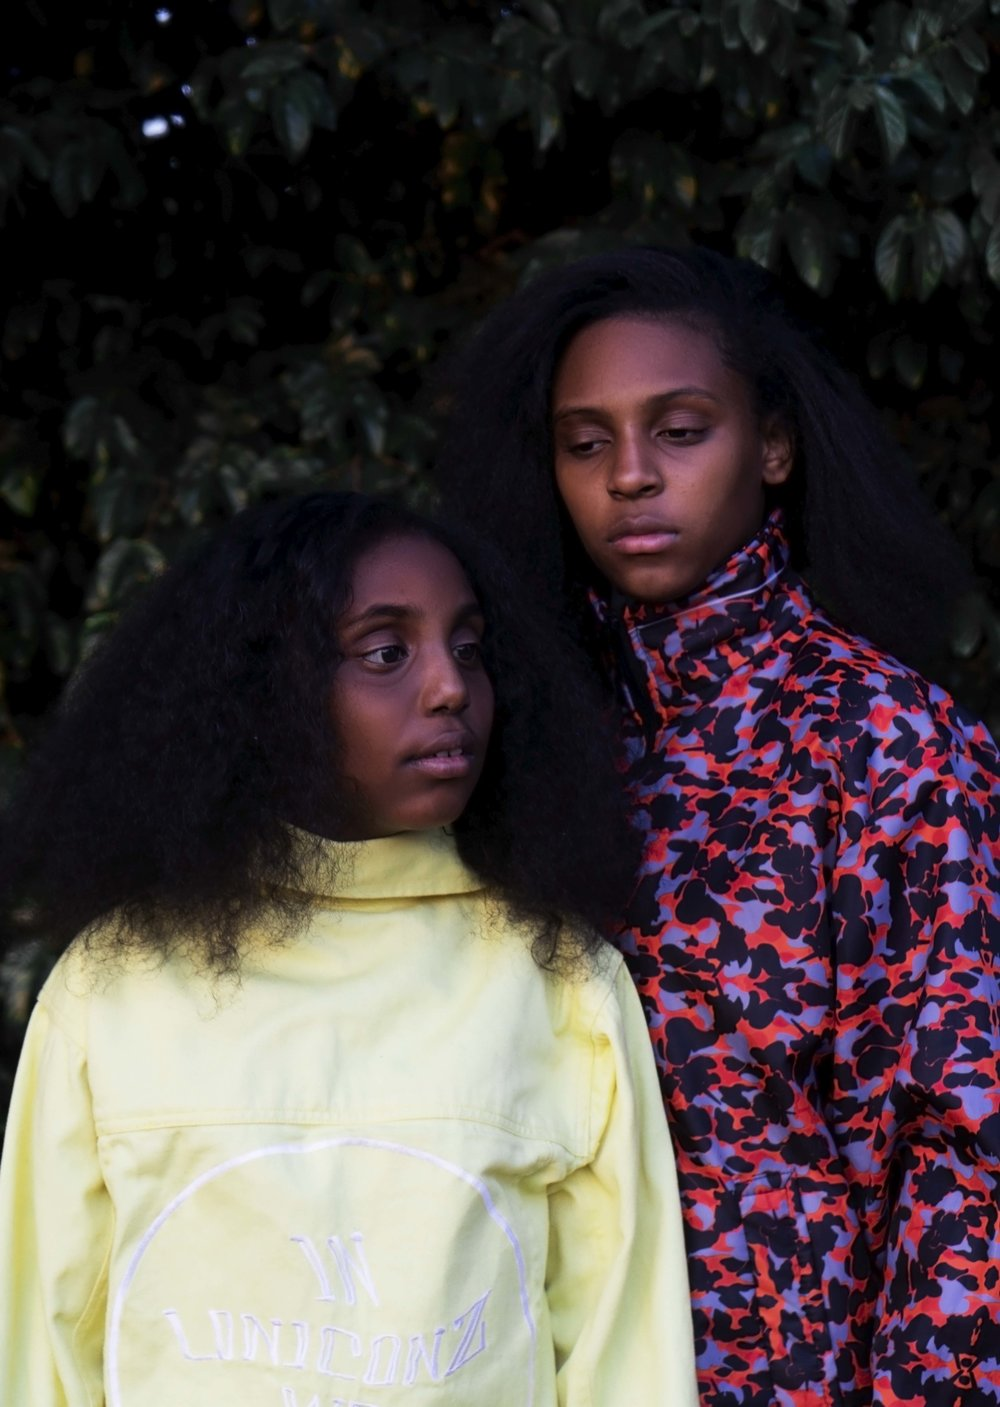 Dionne and Tayla by cole ndelu 1.jpg